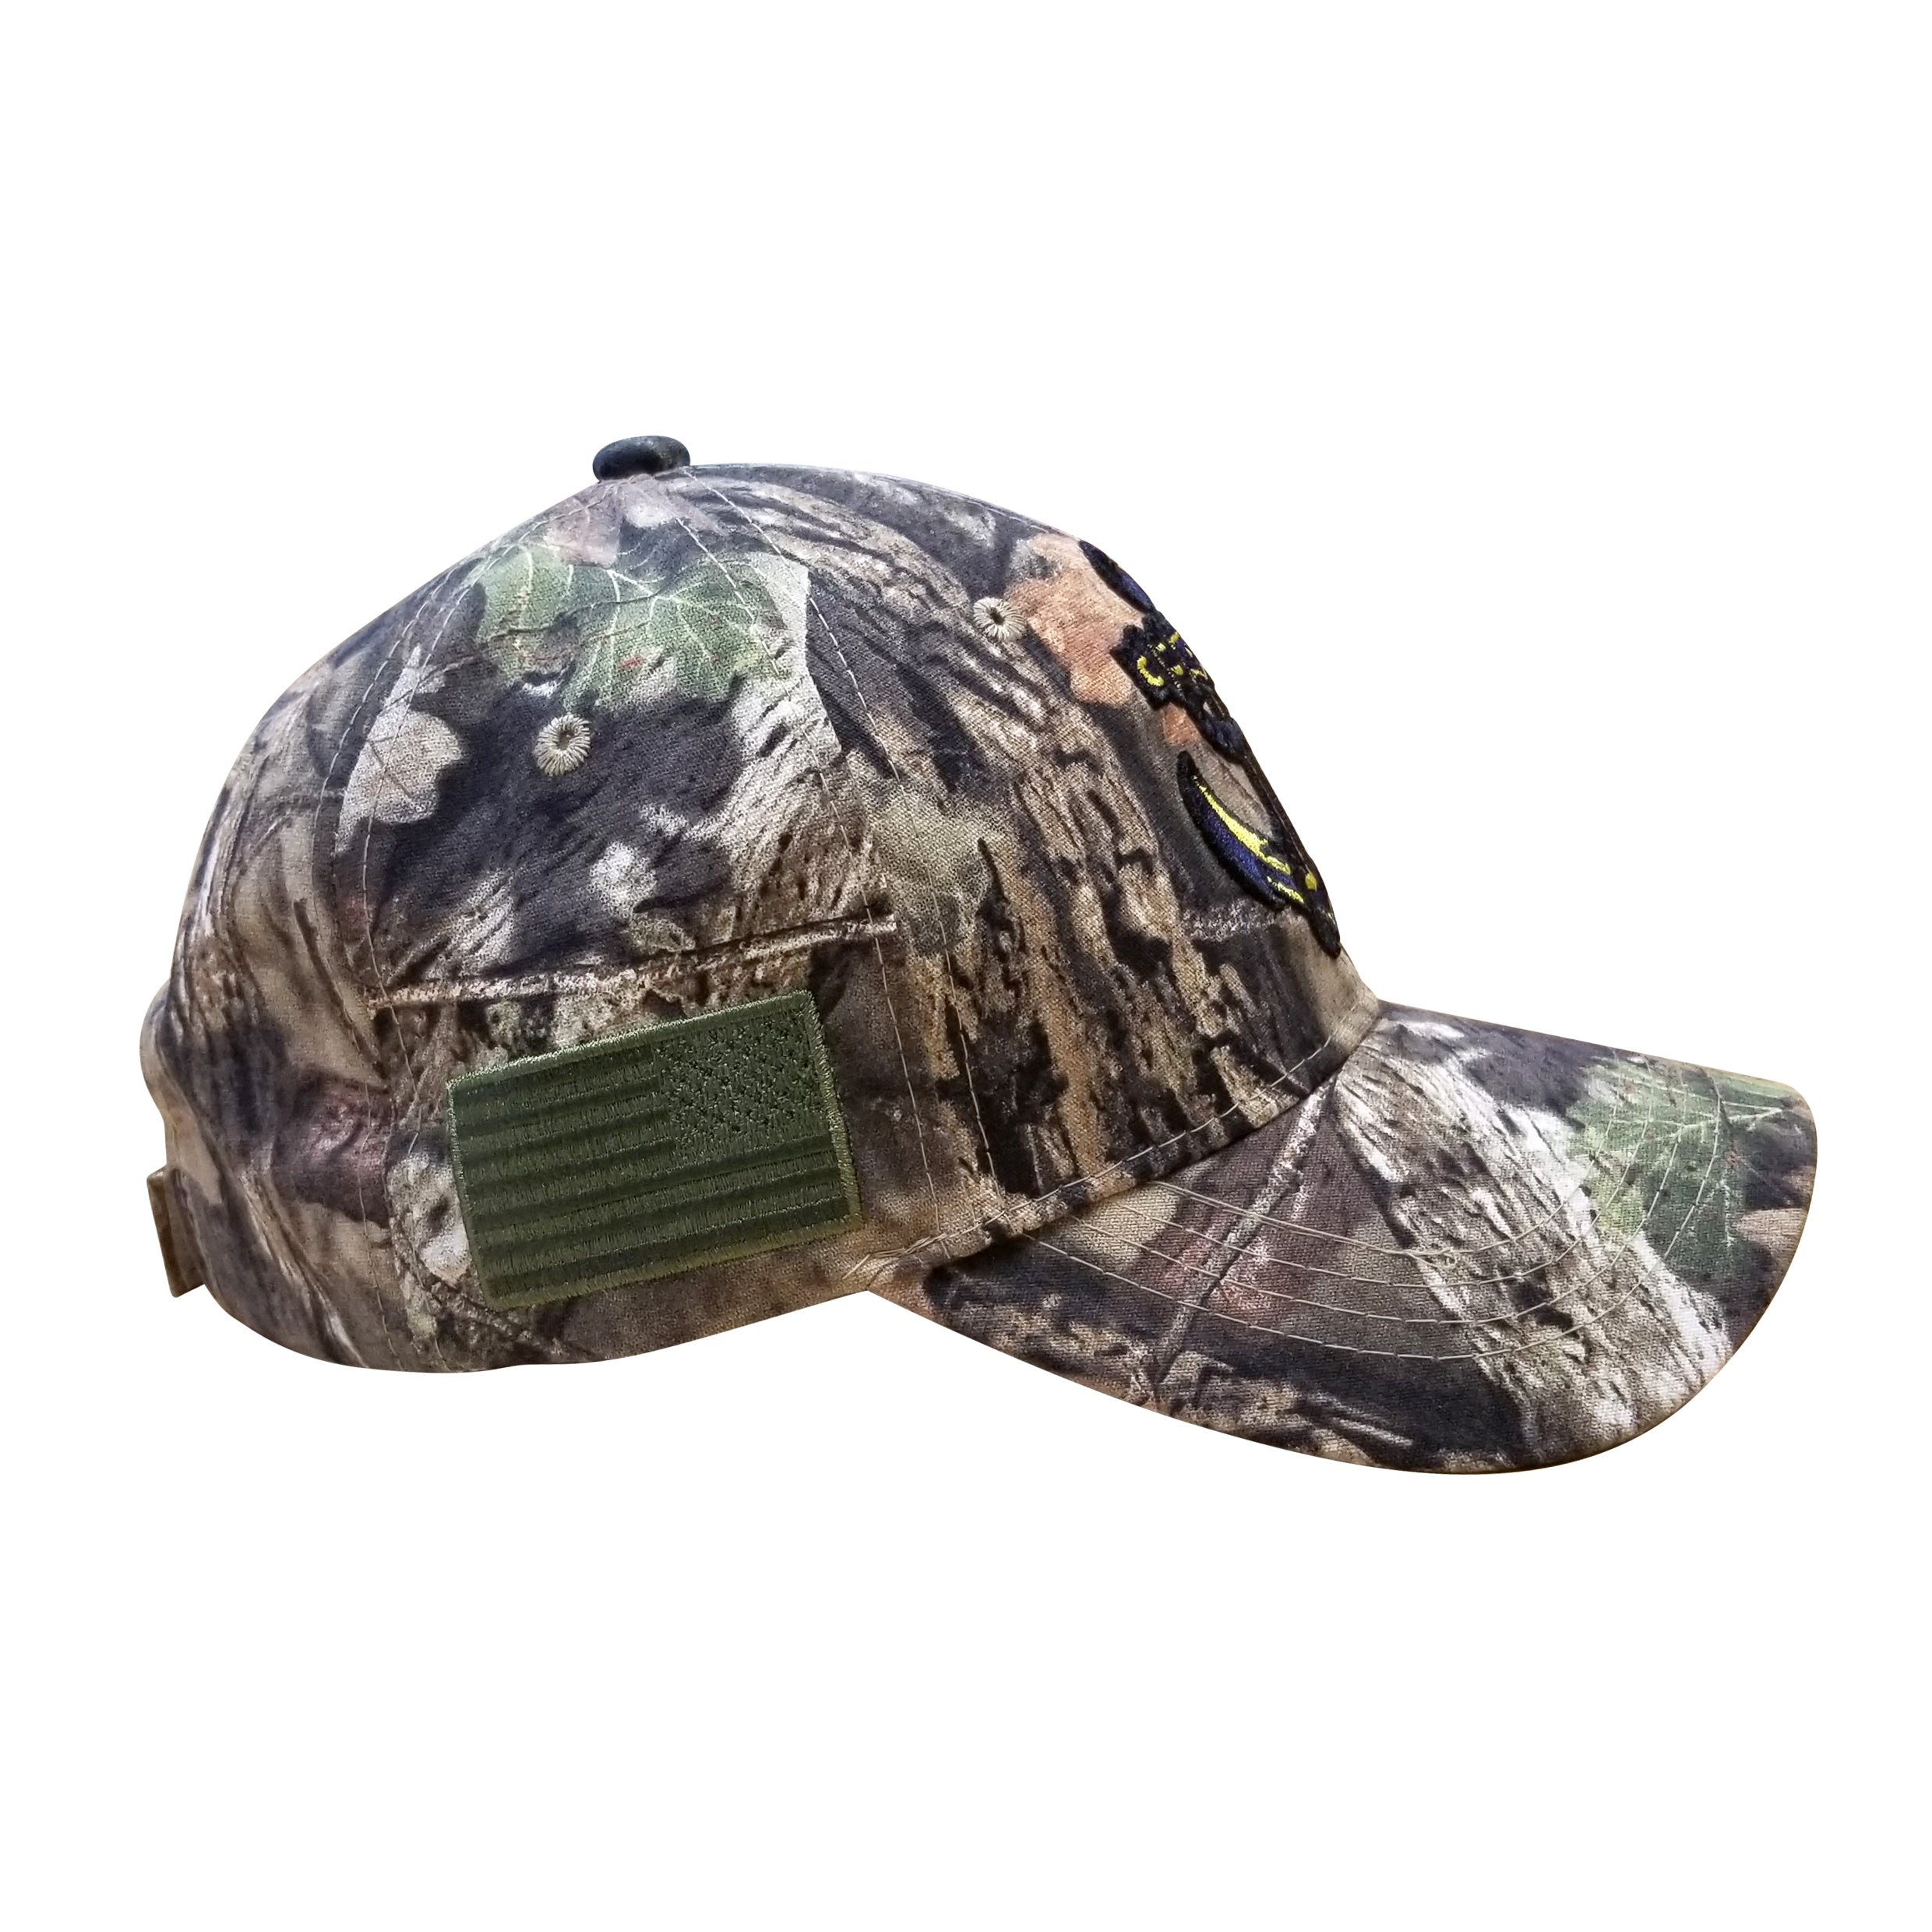 U.S. Navy x Mossy Oak Break-Up Country Anchor Cap by Icon Sports